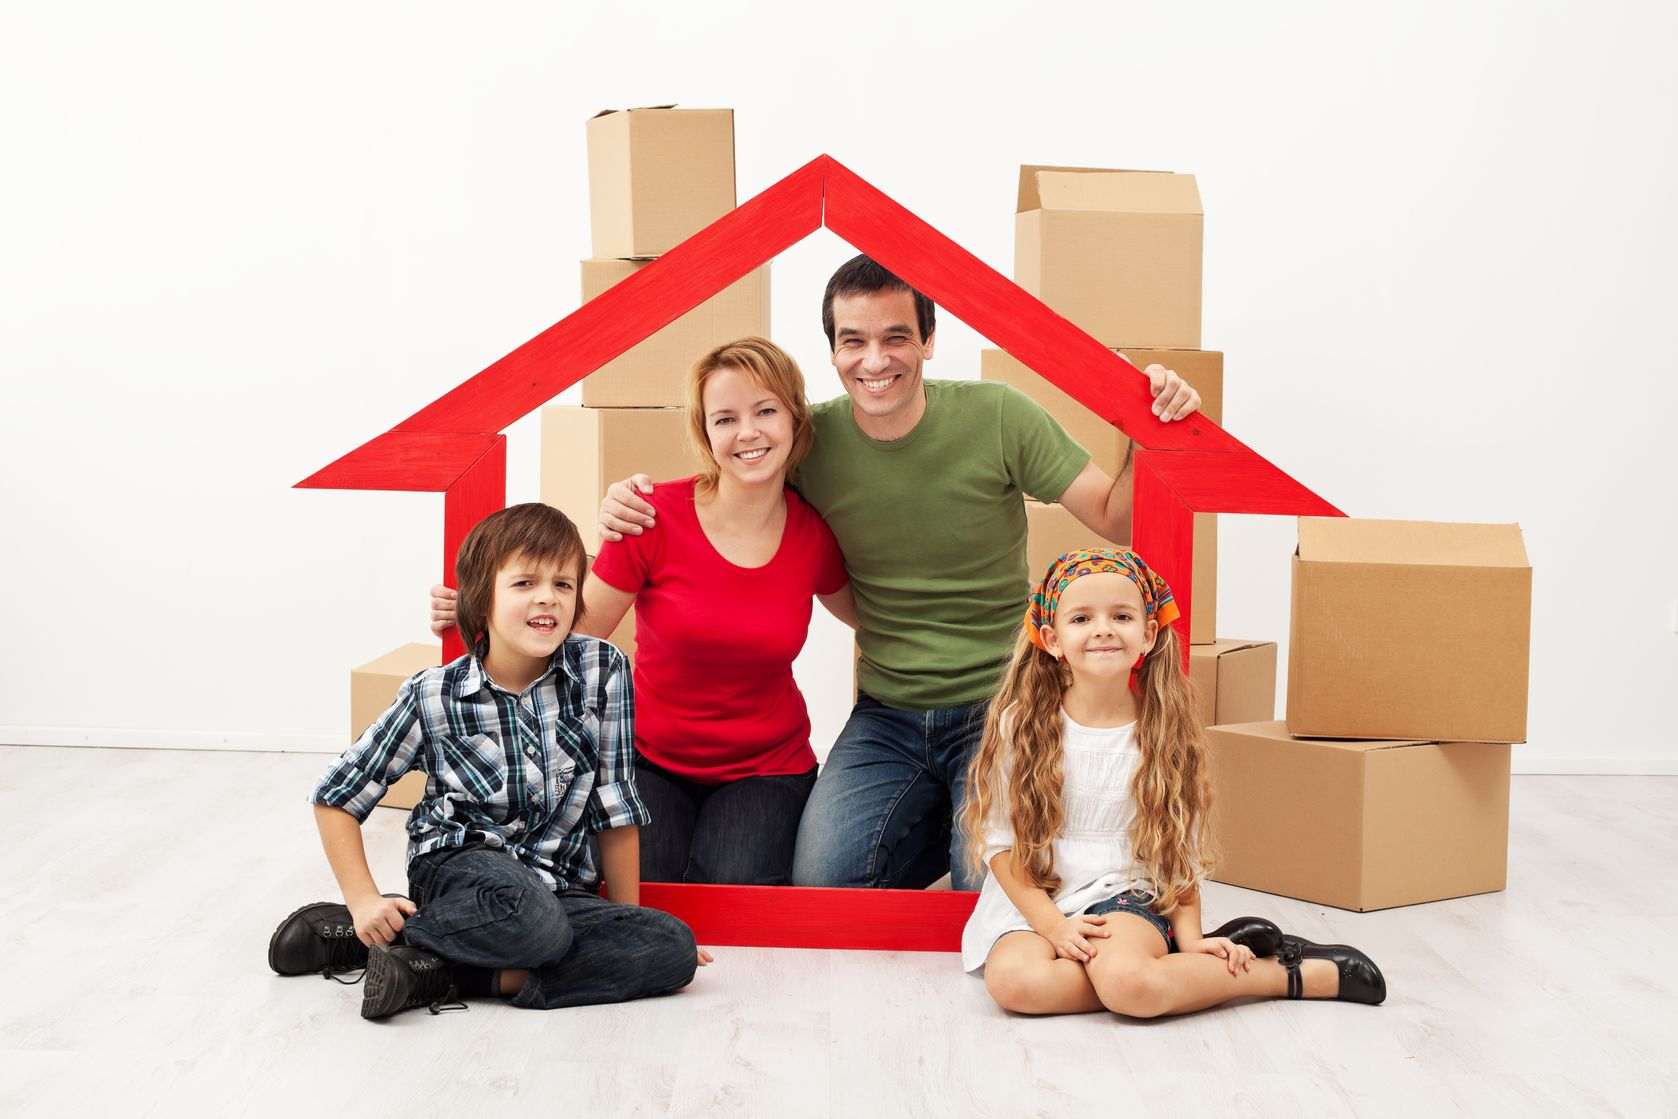 Dover, Clarksville, Paris, Nashville, TN. Homeowners Insurance